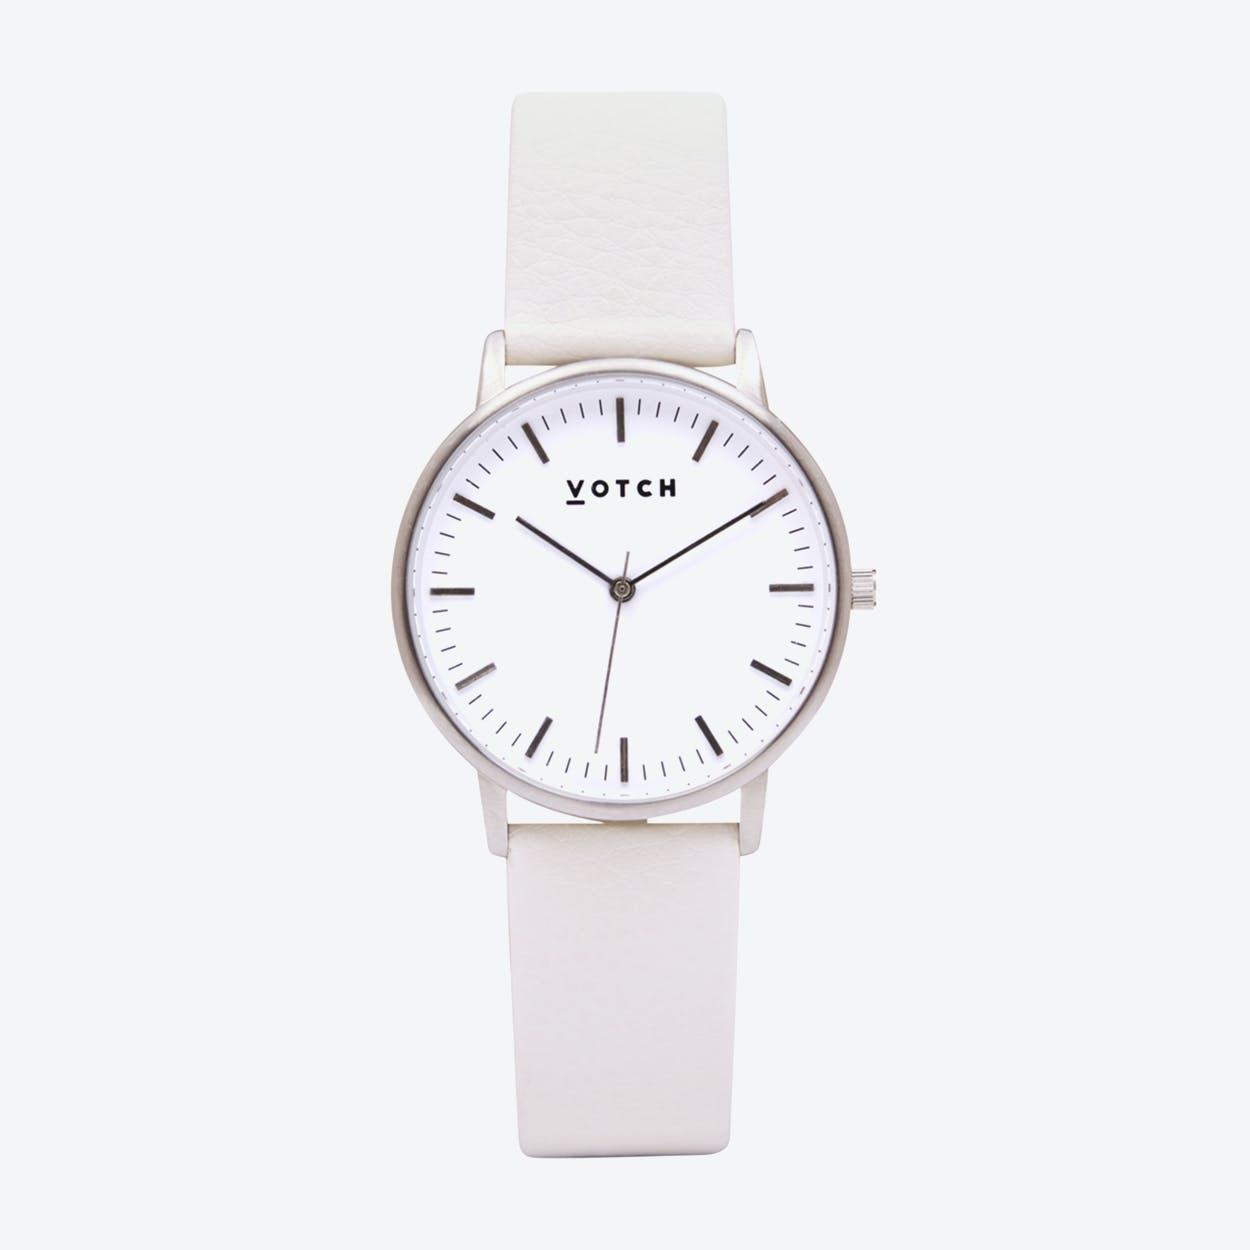 Intense Classic Watch in Silver with White Face and Off-White Vegan Leather Strap, 36mm